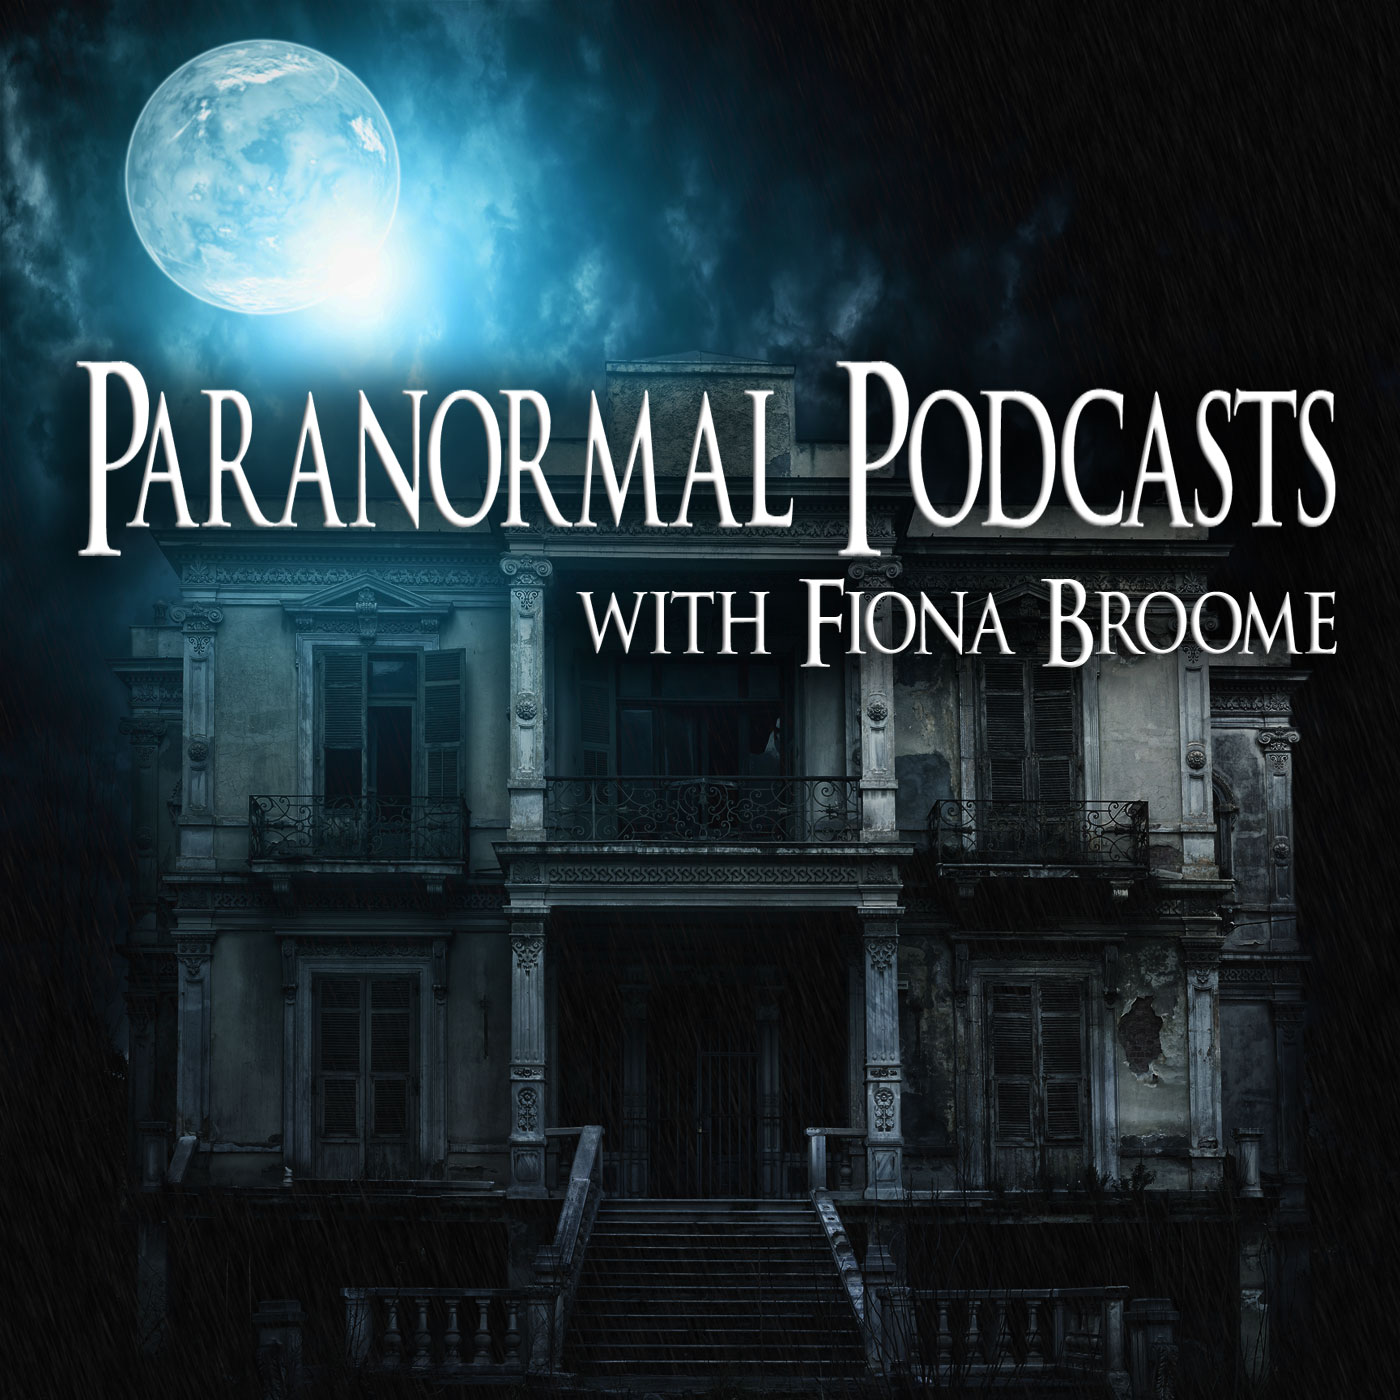 Paranormal Podcasts with Fiona Broome show art